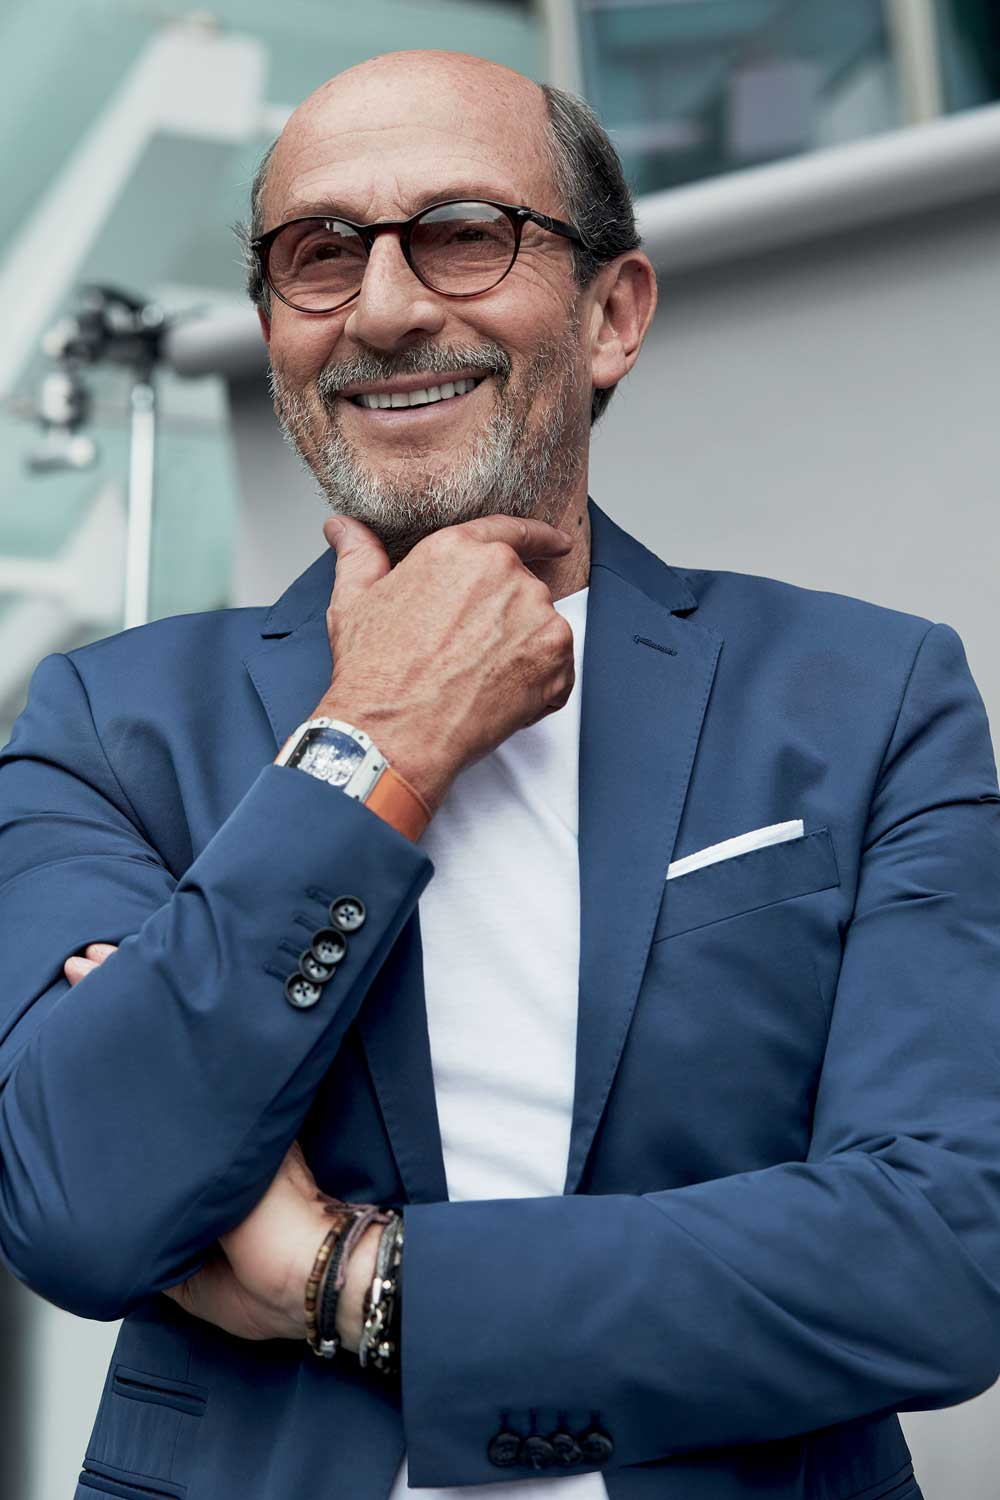 Richard Mille's timepieces have so far transcended their genre and have become cultural symbols in their own right